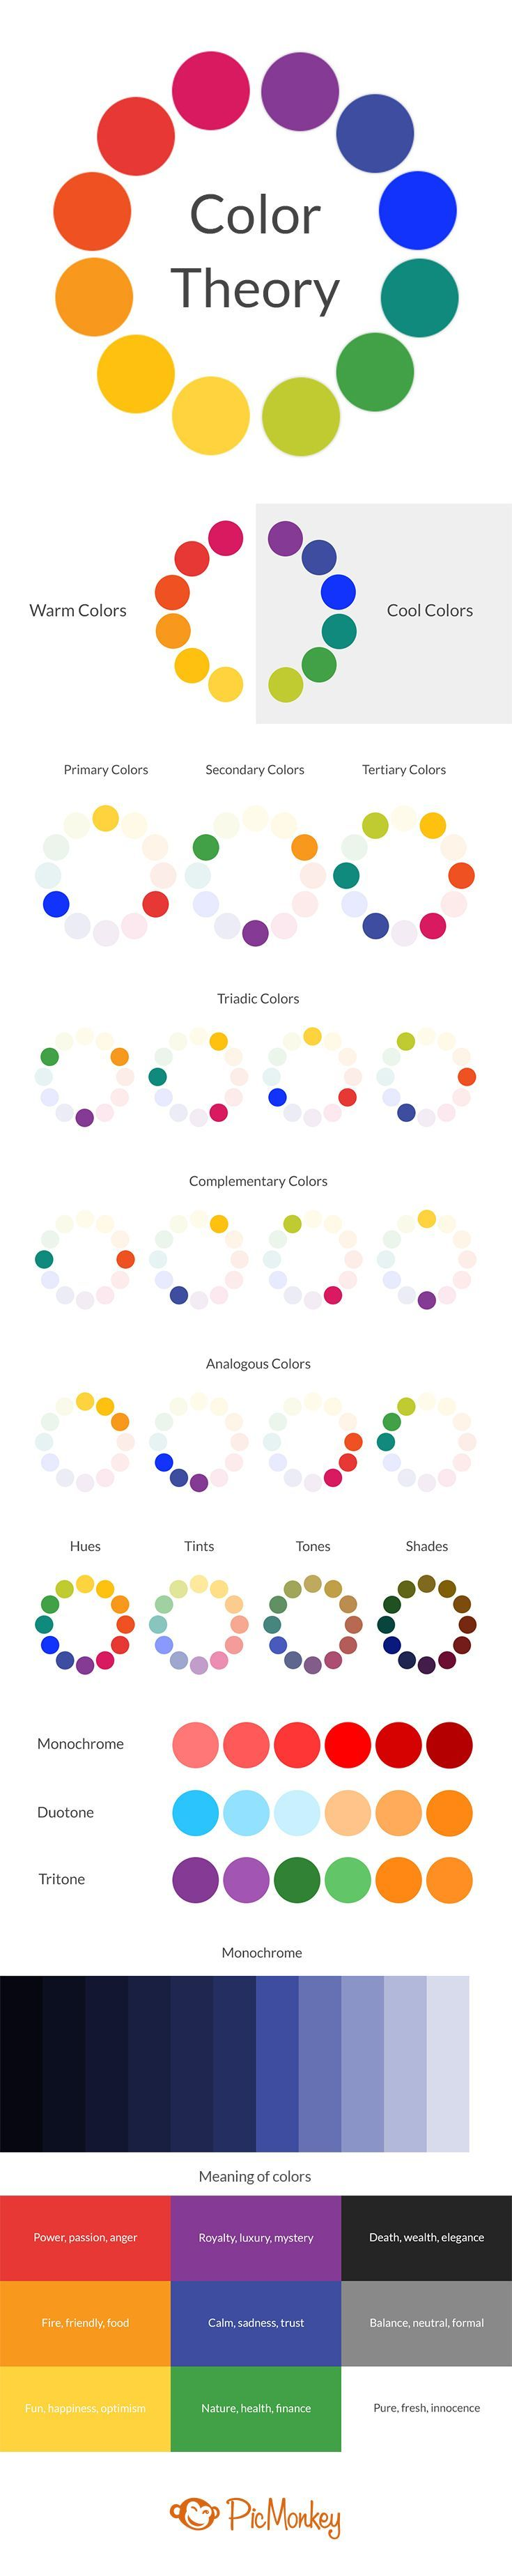 Your designs can spark a whole range of emotions in people. Color theory unlocks the secrets of how to use hues to inspire joy, sadness, and even hunger.